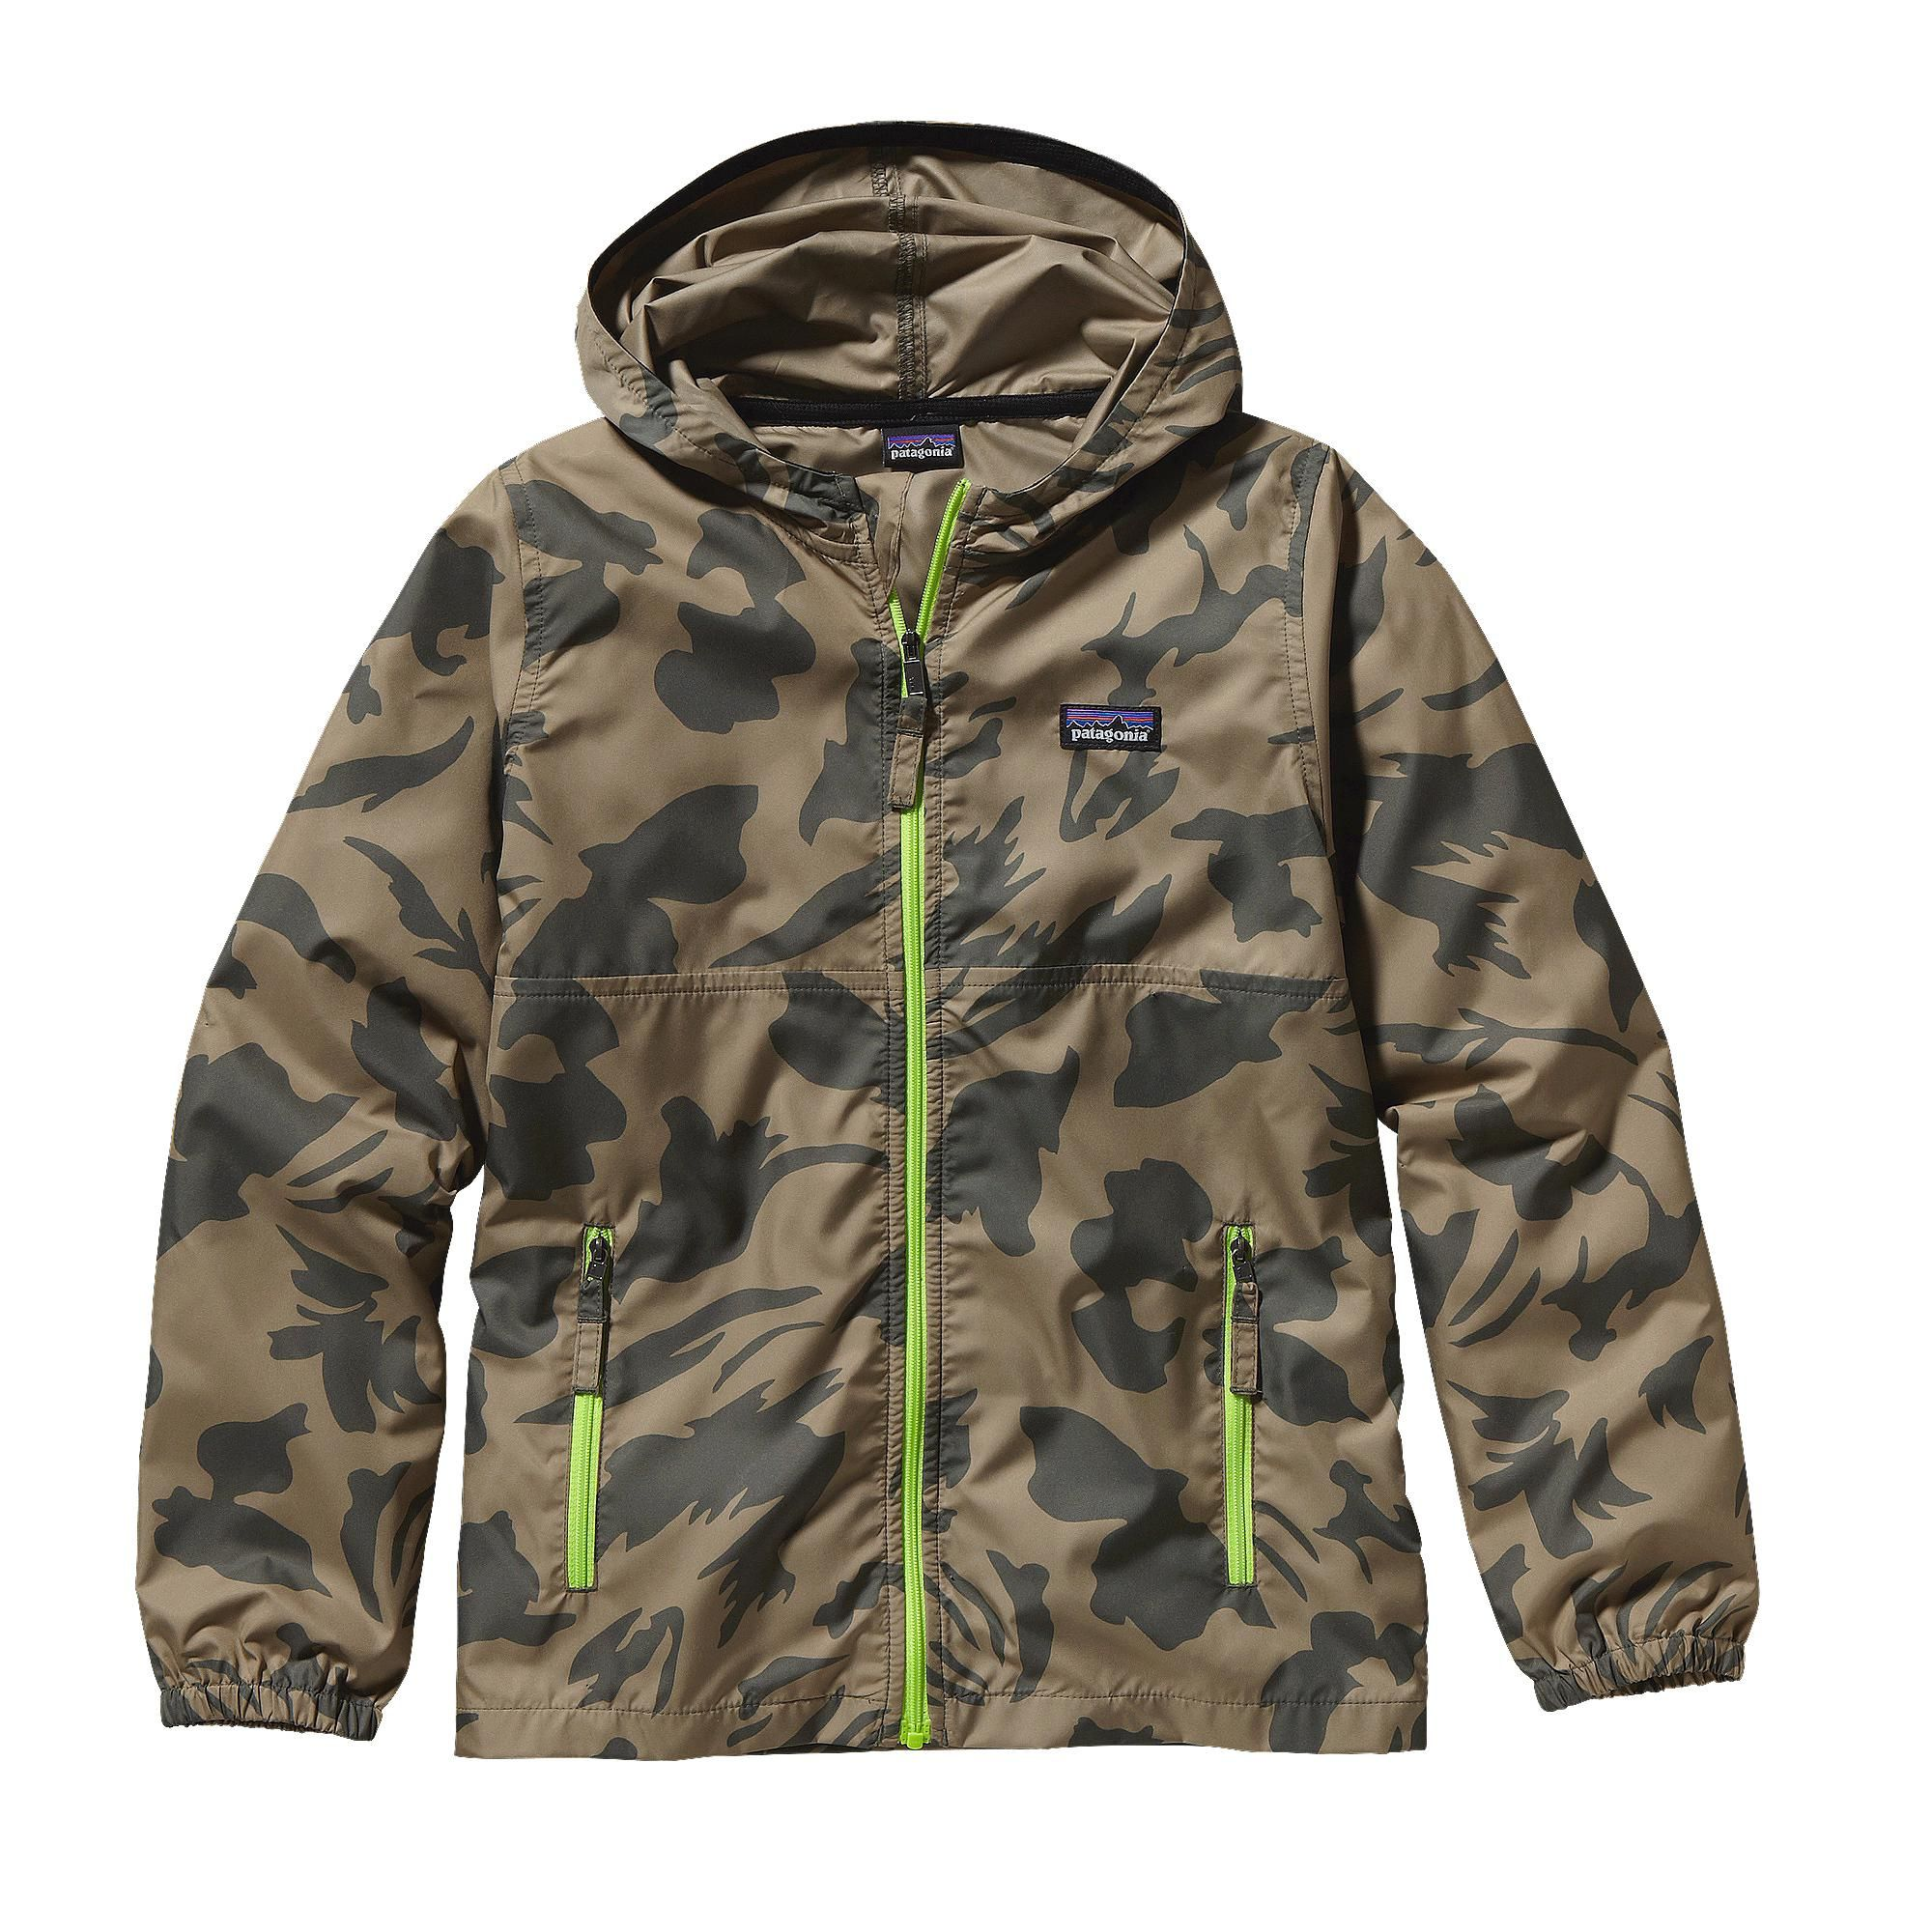 The Patagonia Boys Light Amp Variable 174 Hoody Is A Sun